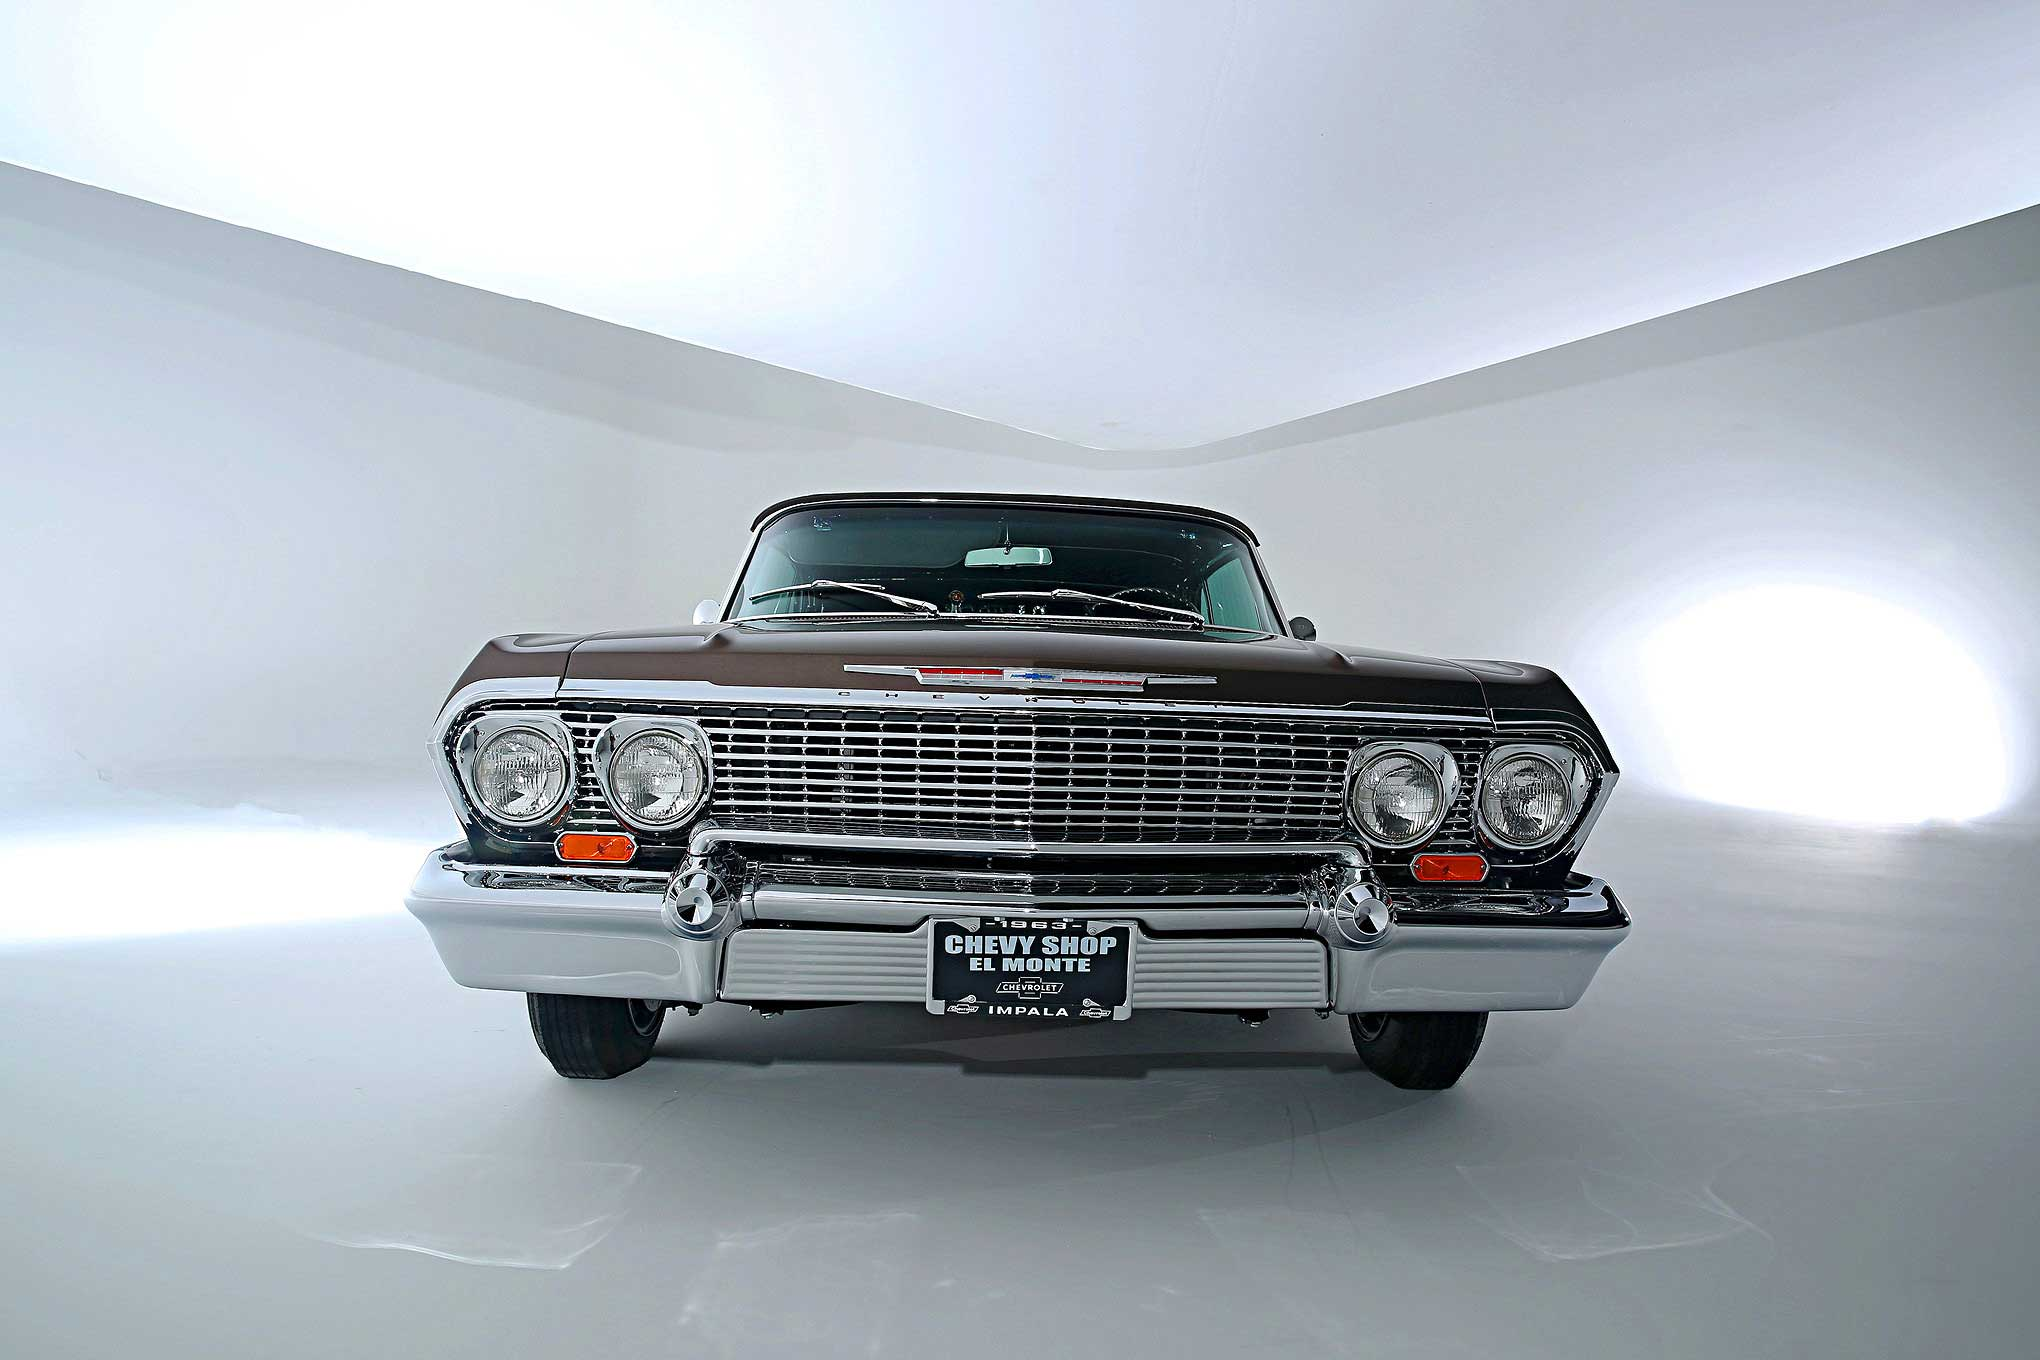 1963 chevrolet impala front grille 1963 chevrolet impala convertible taking flight 1965 chevy impala front suspension diagram at webbmarketing.co